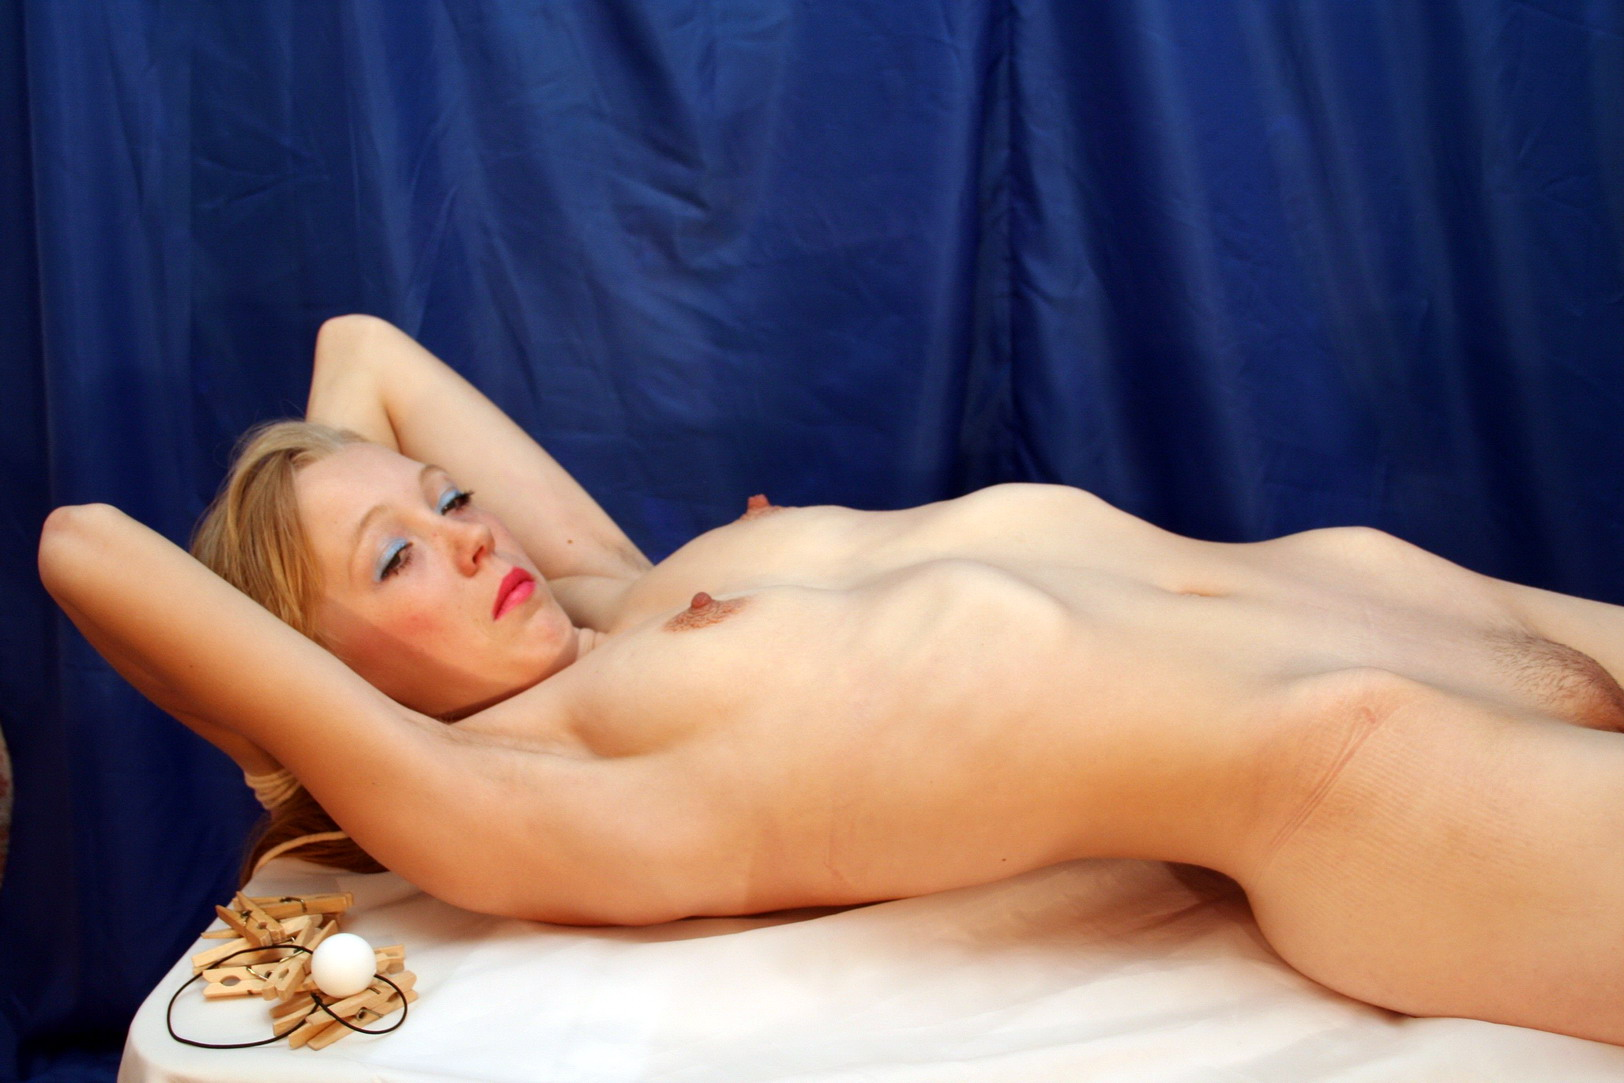 Teen In Bondage